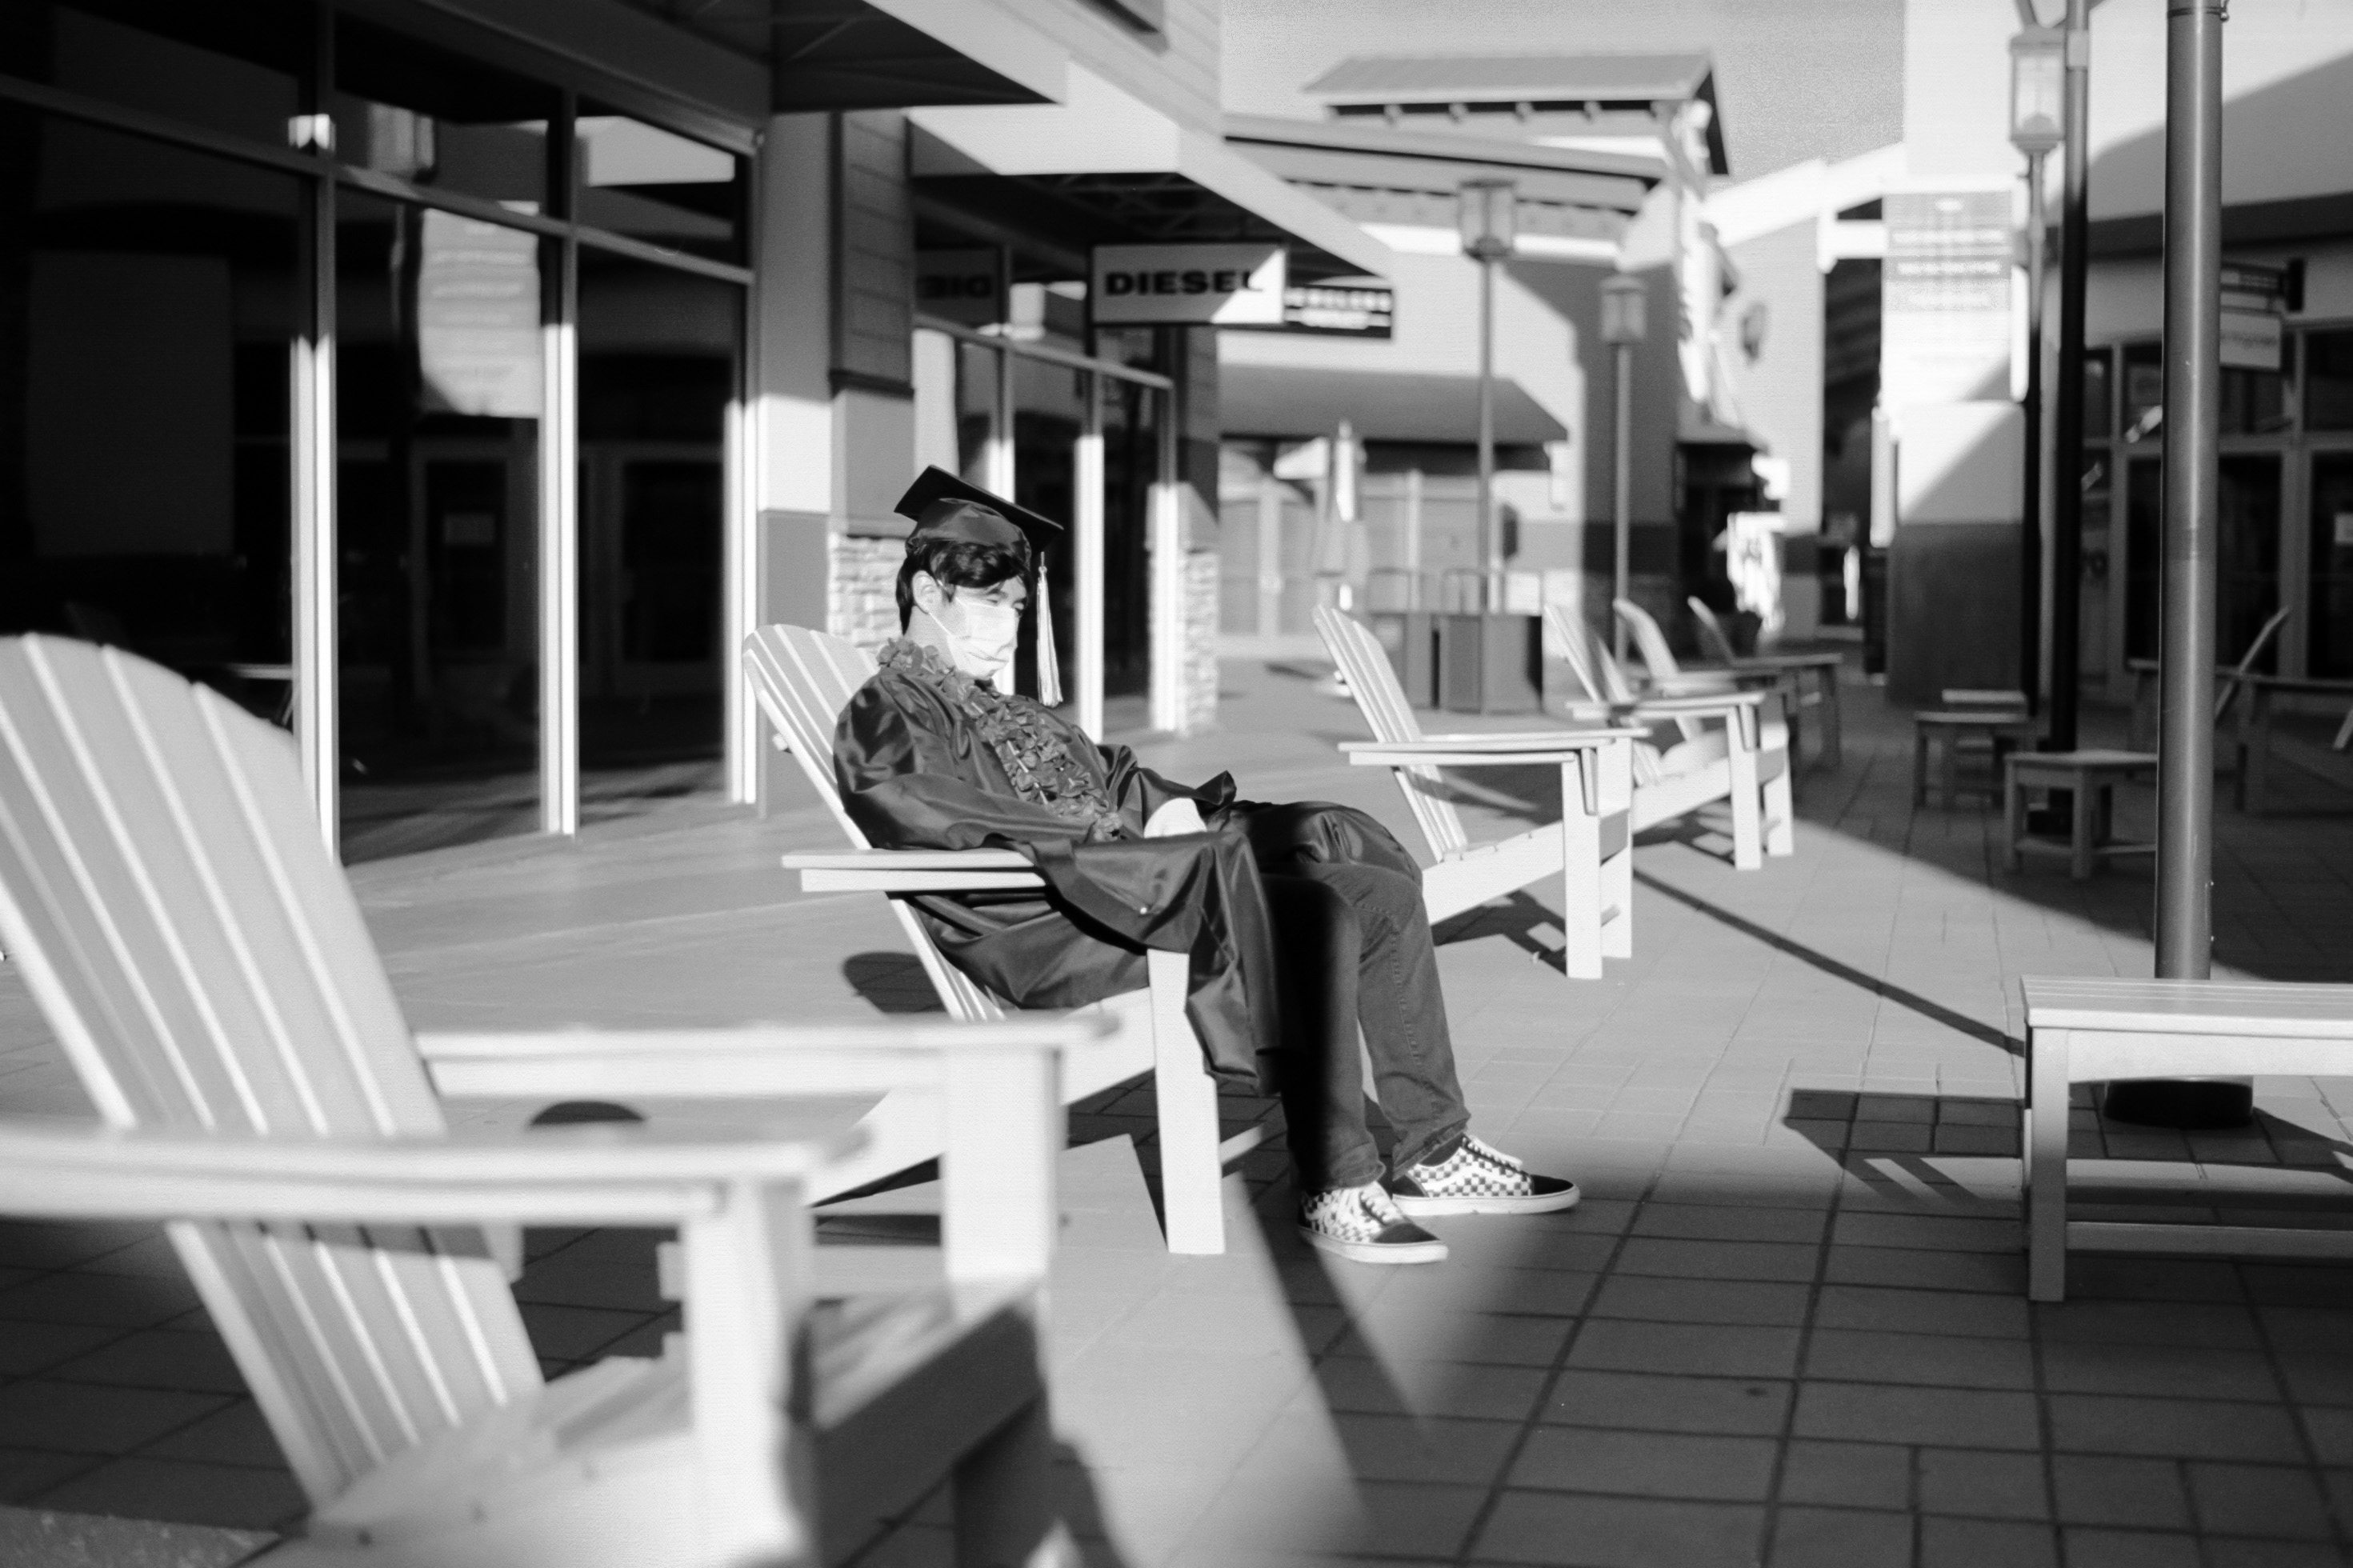 A boy sits alone among a row of lawn chairs in an abandoned shopping plaza. He is wearing full graduation regalia and a surgical face mask.